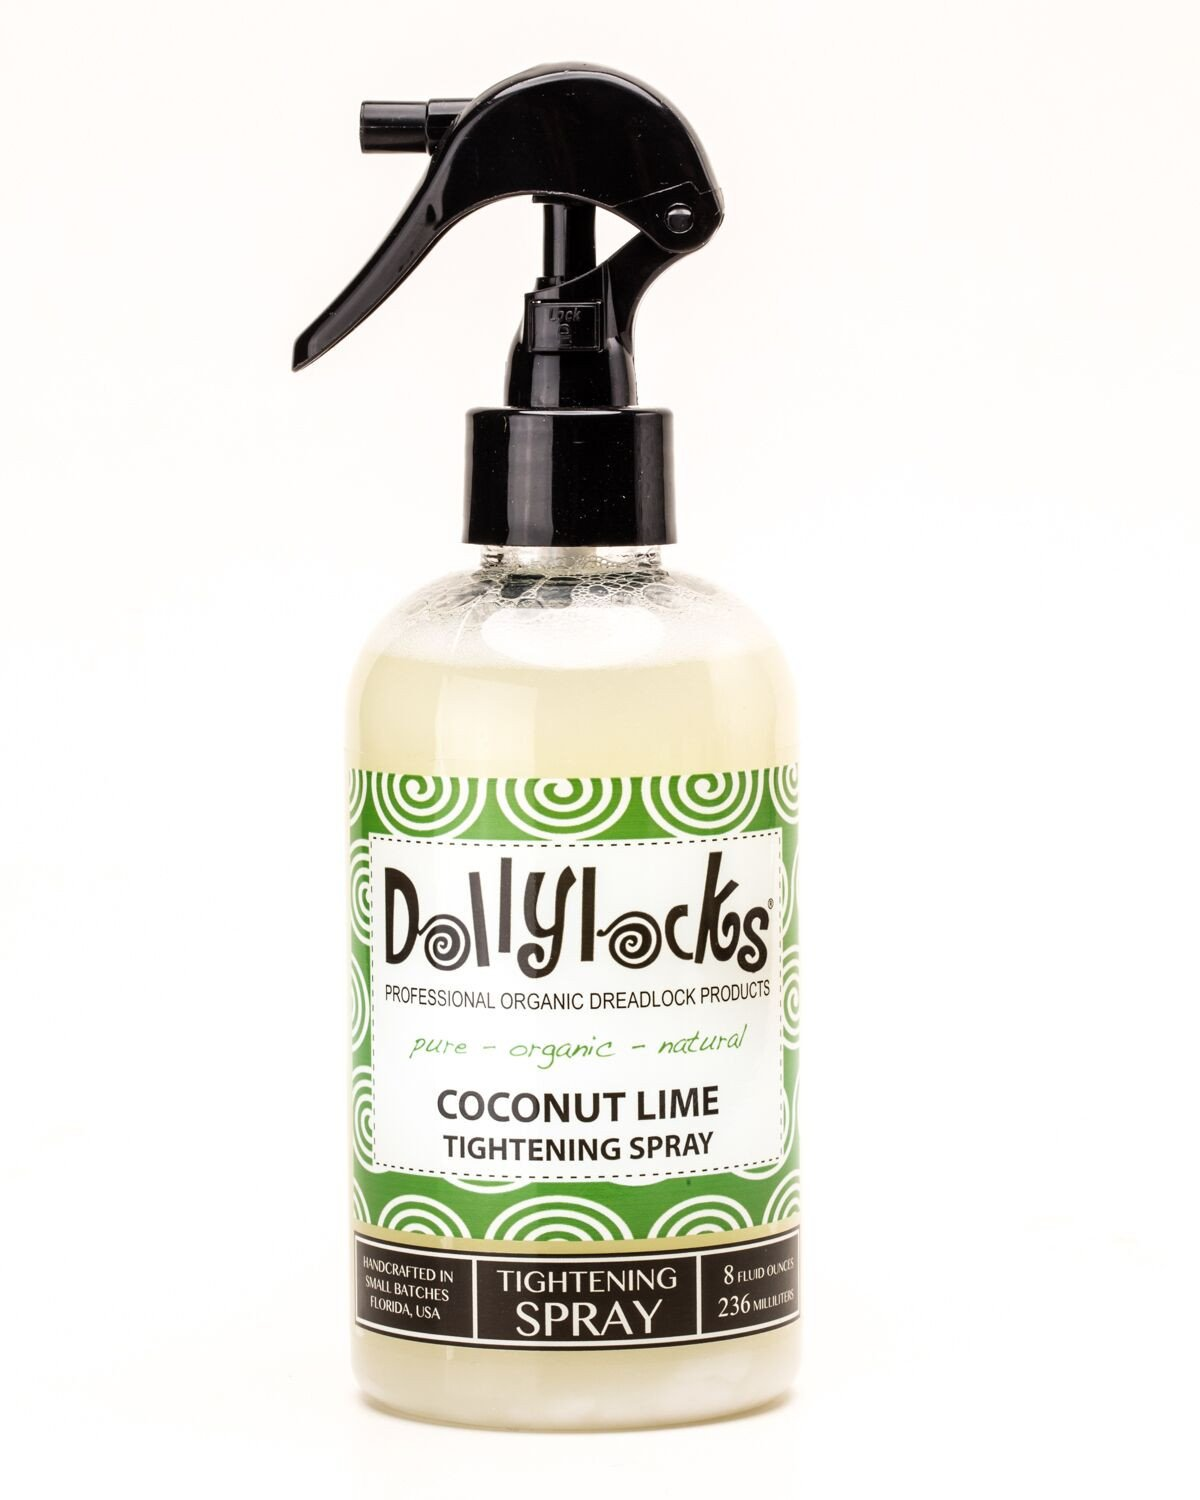 Dollylocks - Dreadlocks Haarspray - Coconut Lime (8oz/236ml)